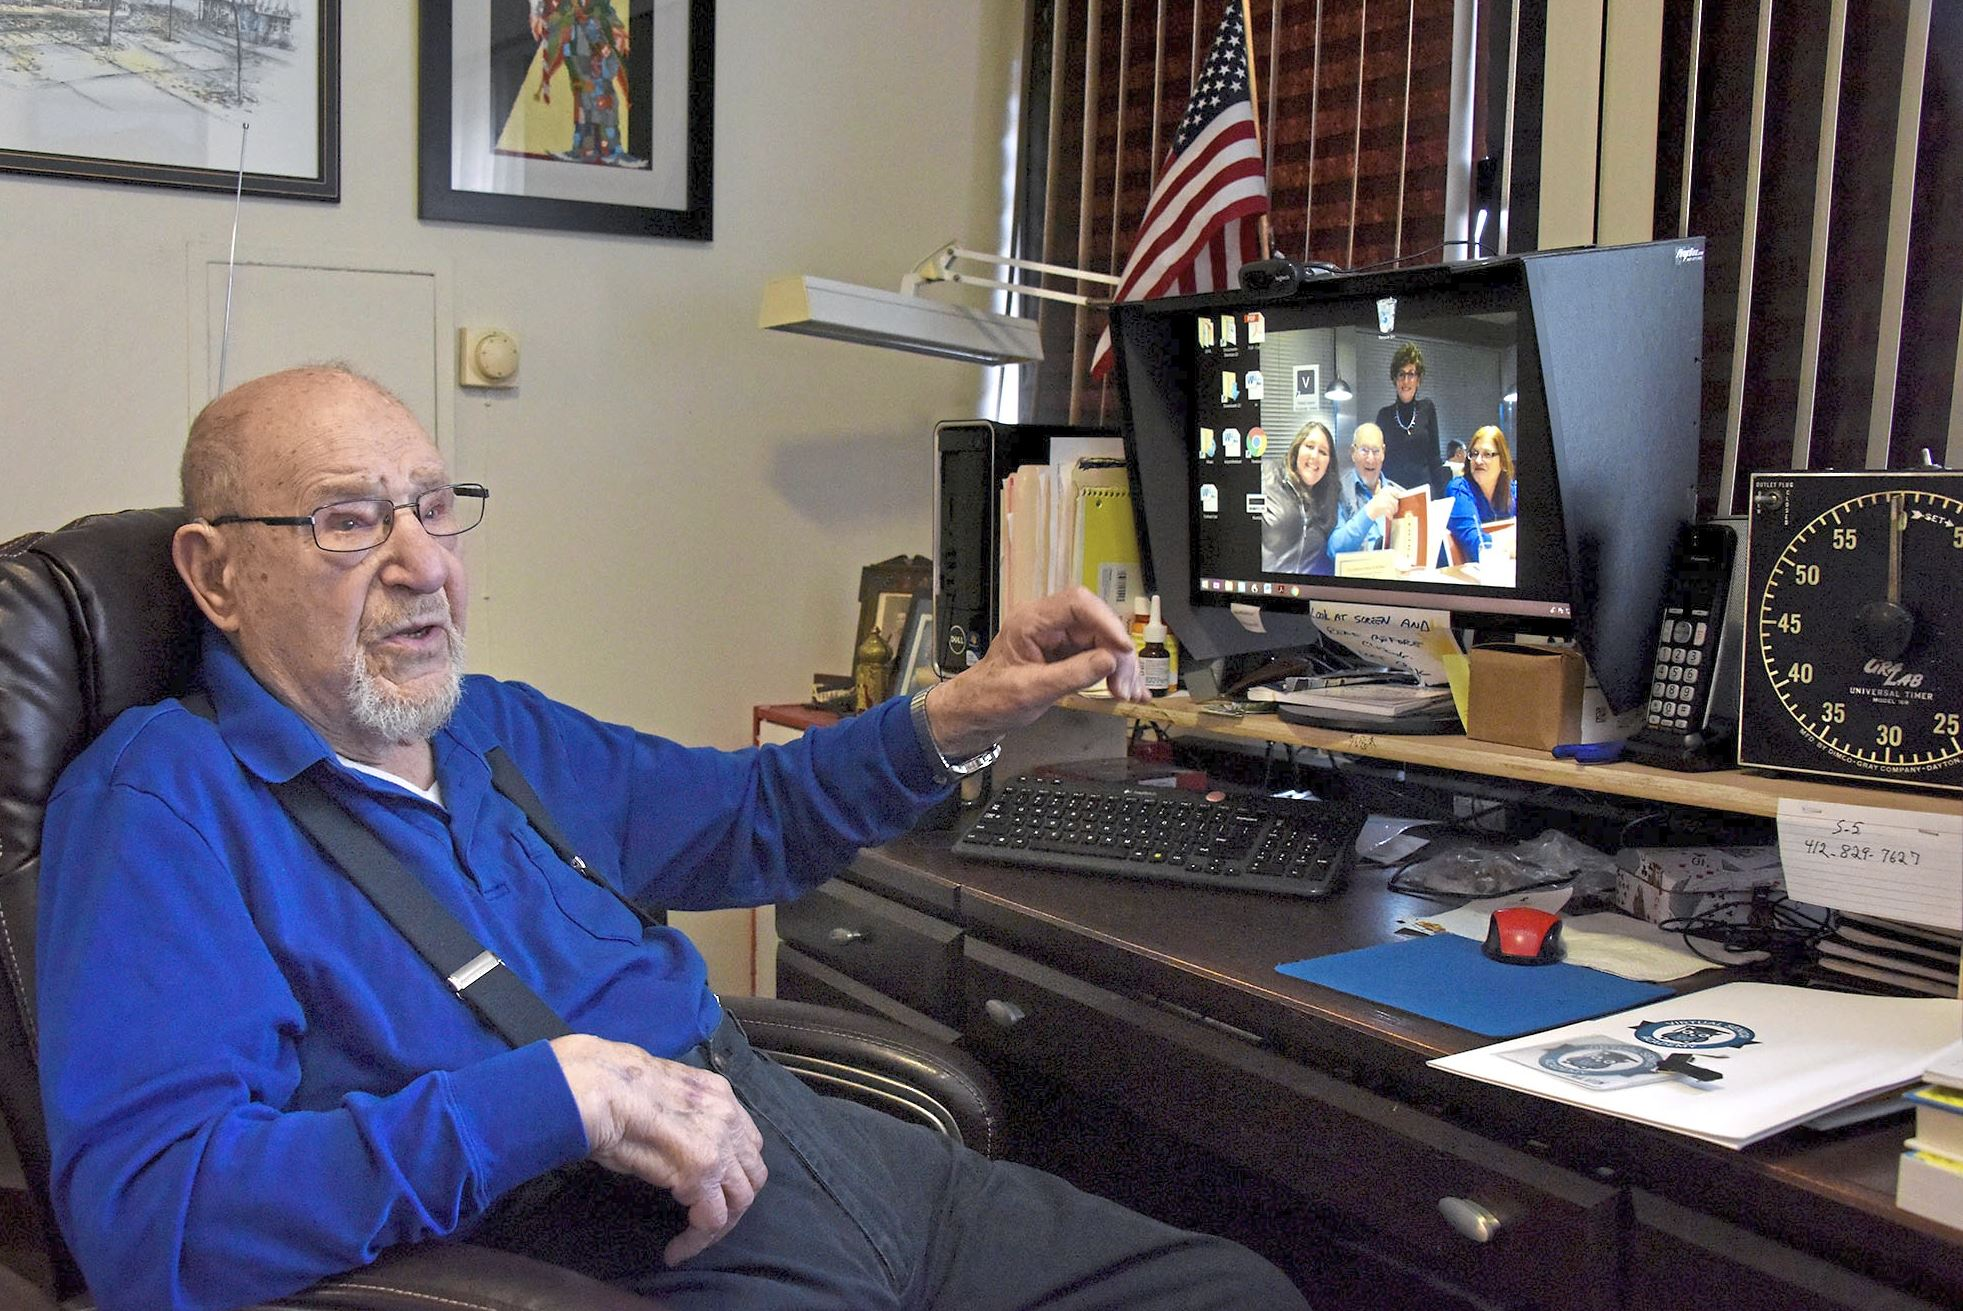 20180316dsSENIORACADEMY0319Local08-7 Al Fineman, 97, talks about his chatroom and using his computer in his living room at the Riverview Towers apartments in the Squirrel Hill. Mr. Fineman is part of the Jewish Healthcare Foundation-sponsored Virtual Senior Academy. Participants use their home computers to take various online classes and interact with each other through the video conferencing. It helps social connections for people who have difficulty getting out due to age.